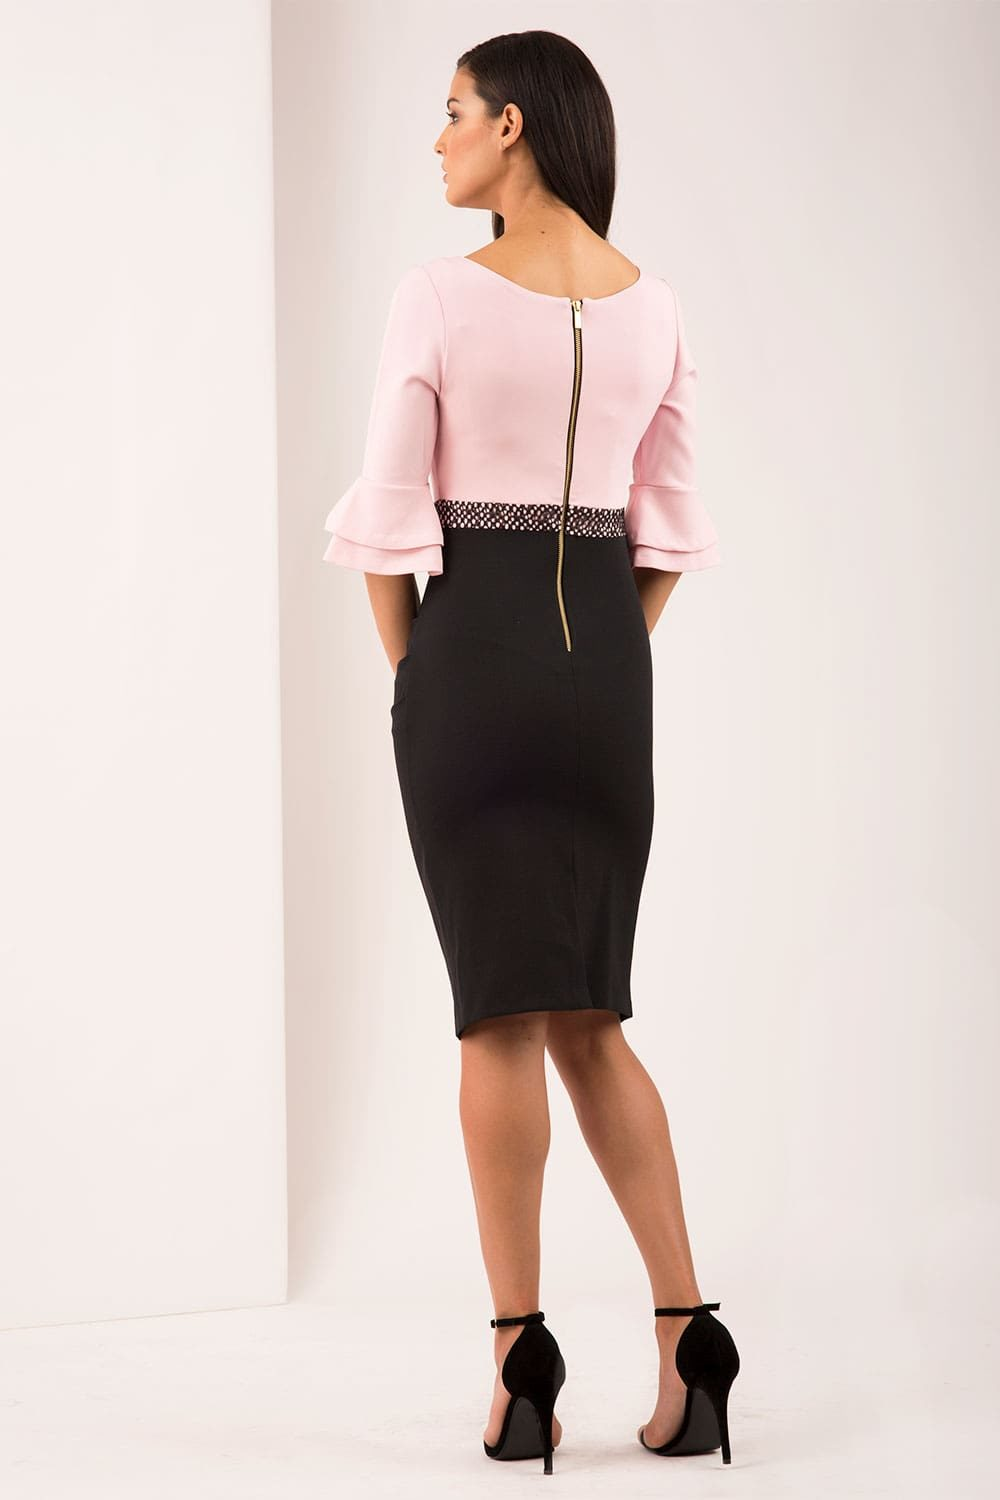 Hybrid Fashion 1272 Rose Bell Sleeve Pencil Dress